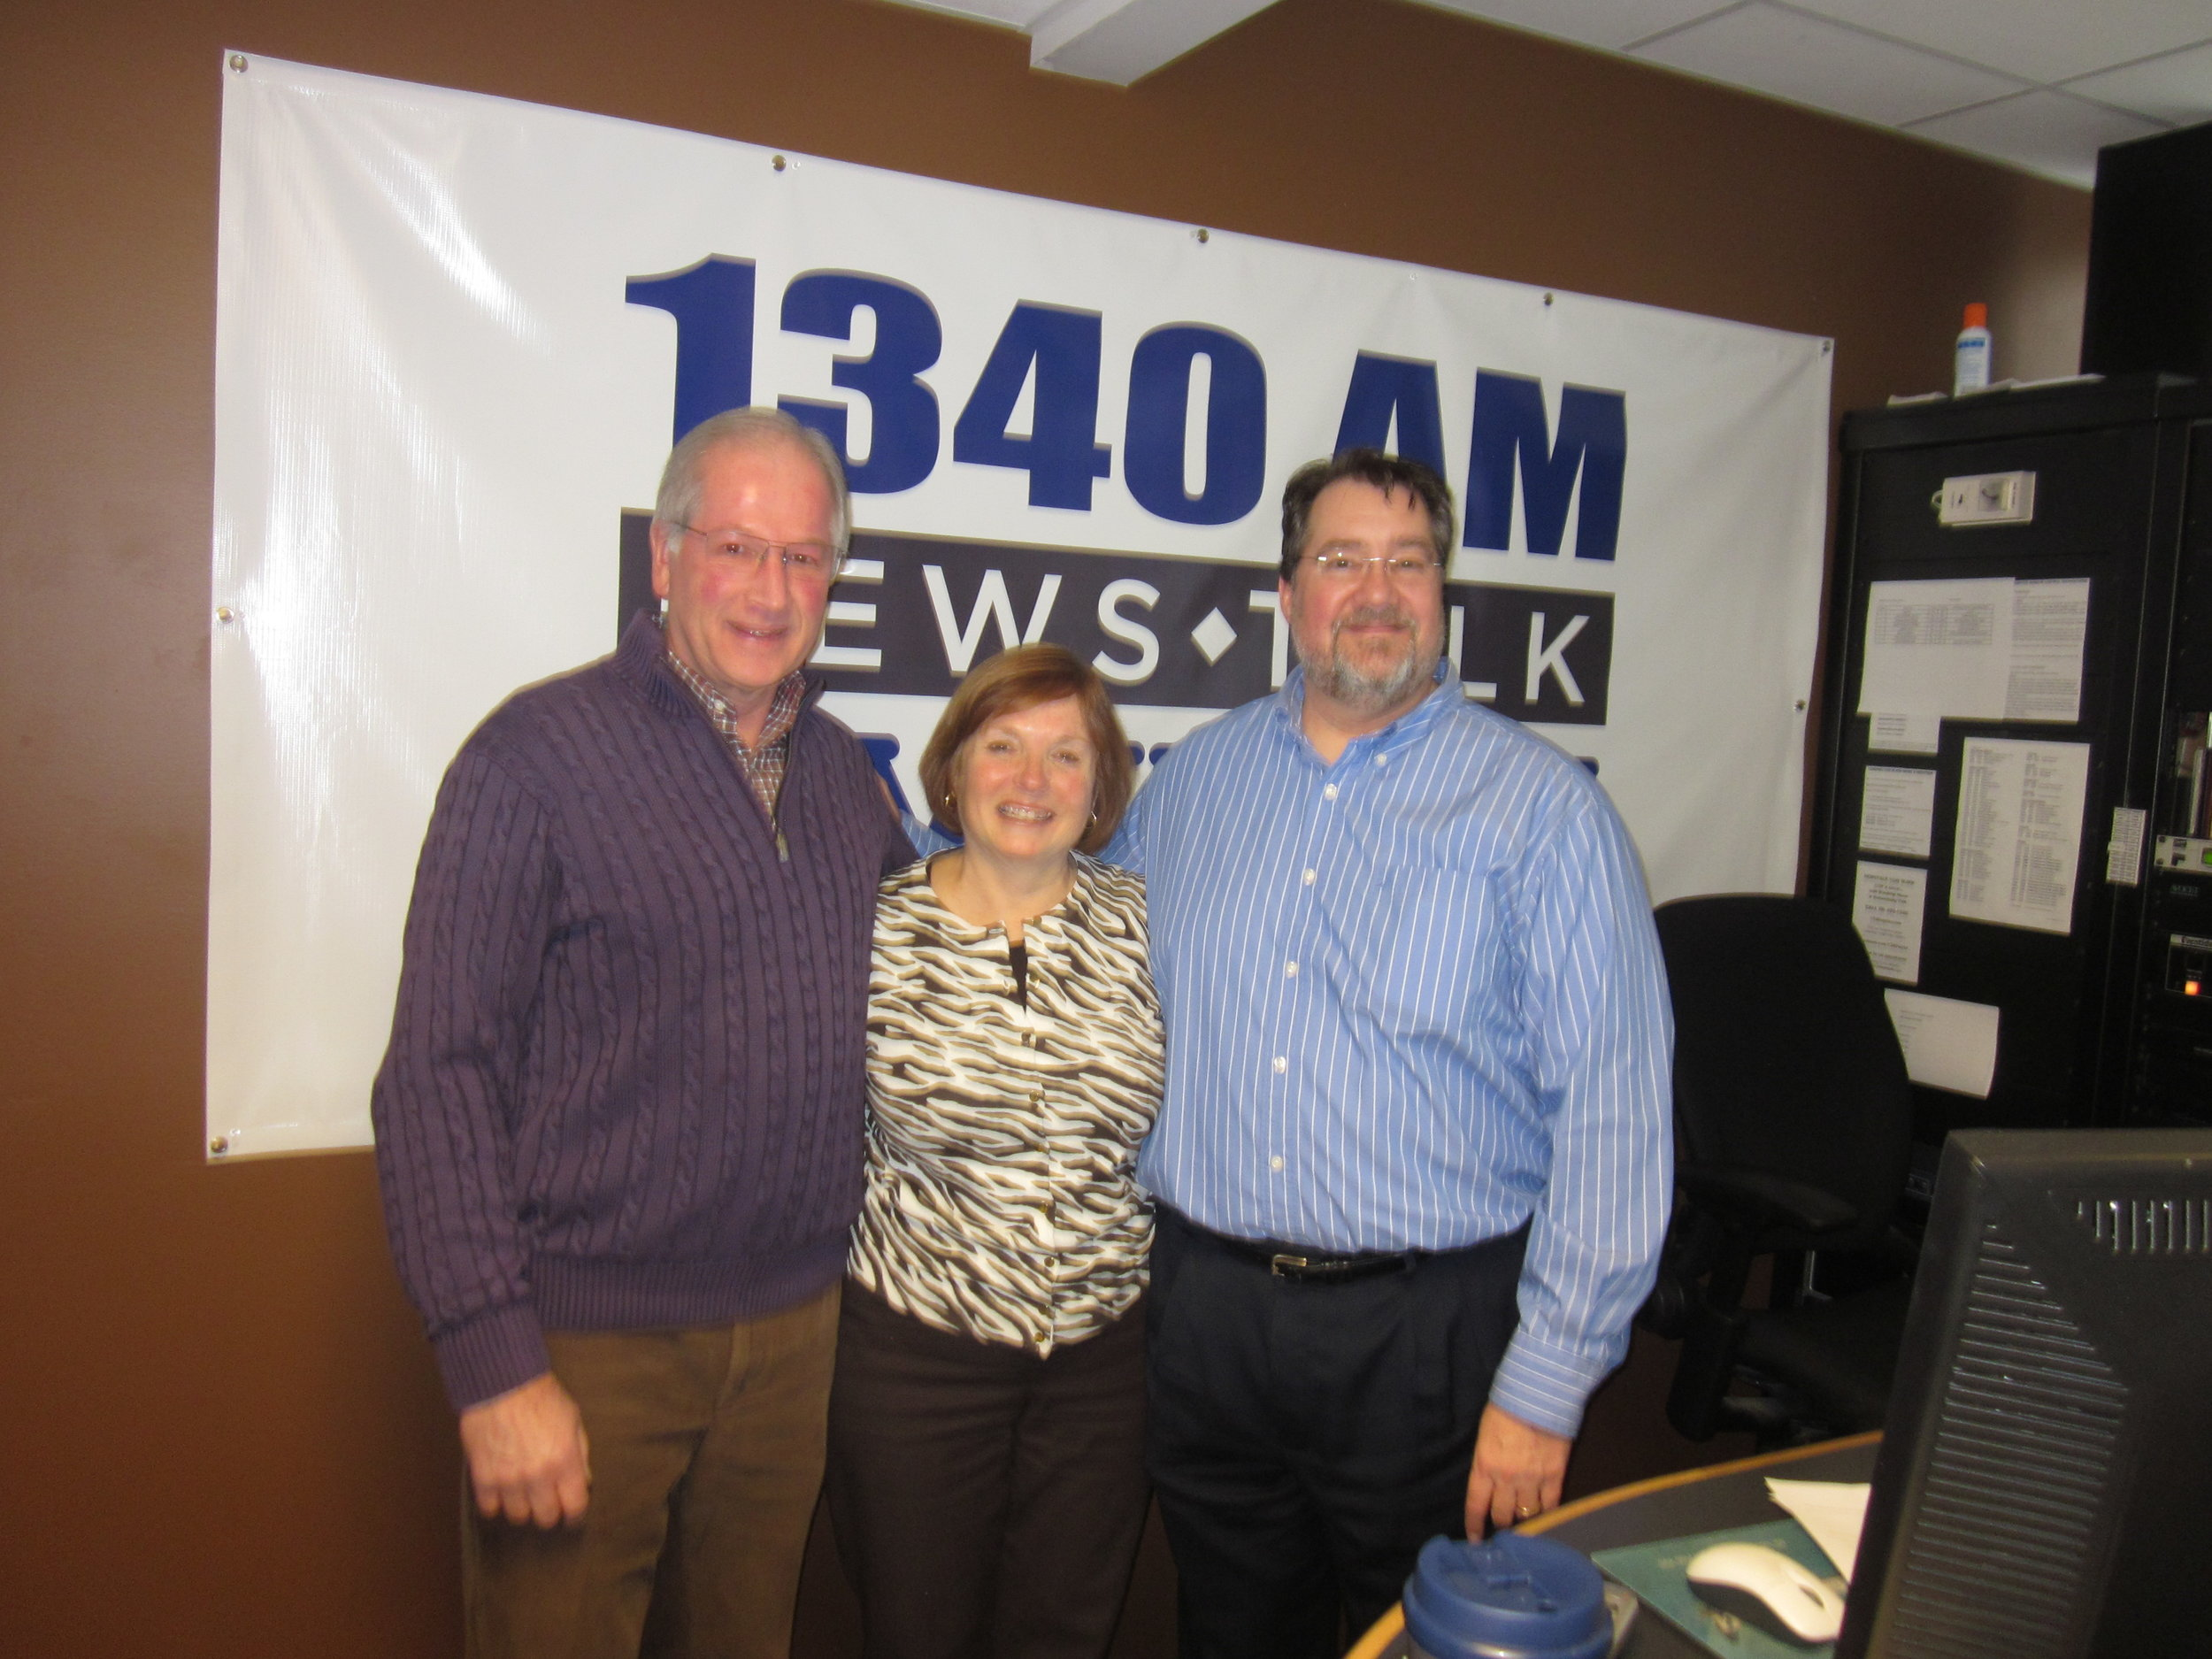 Dave Jaconette (right) interviewed Ron Rozema and me on WJRW radio.